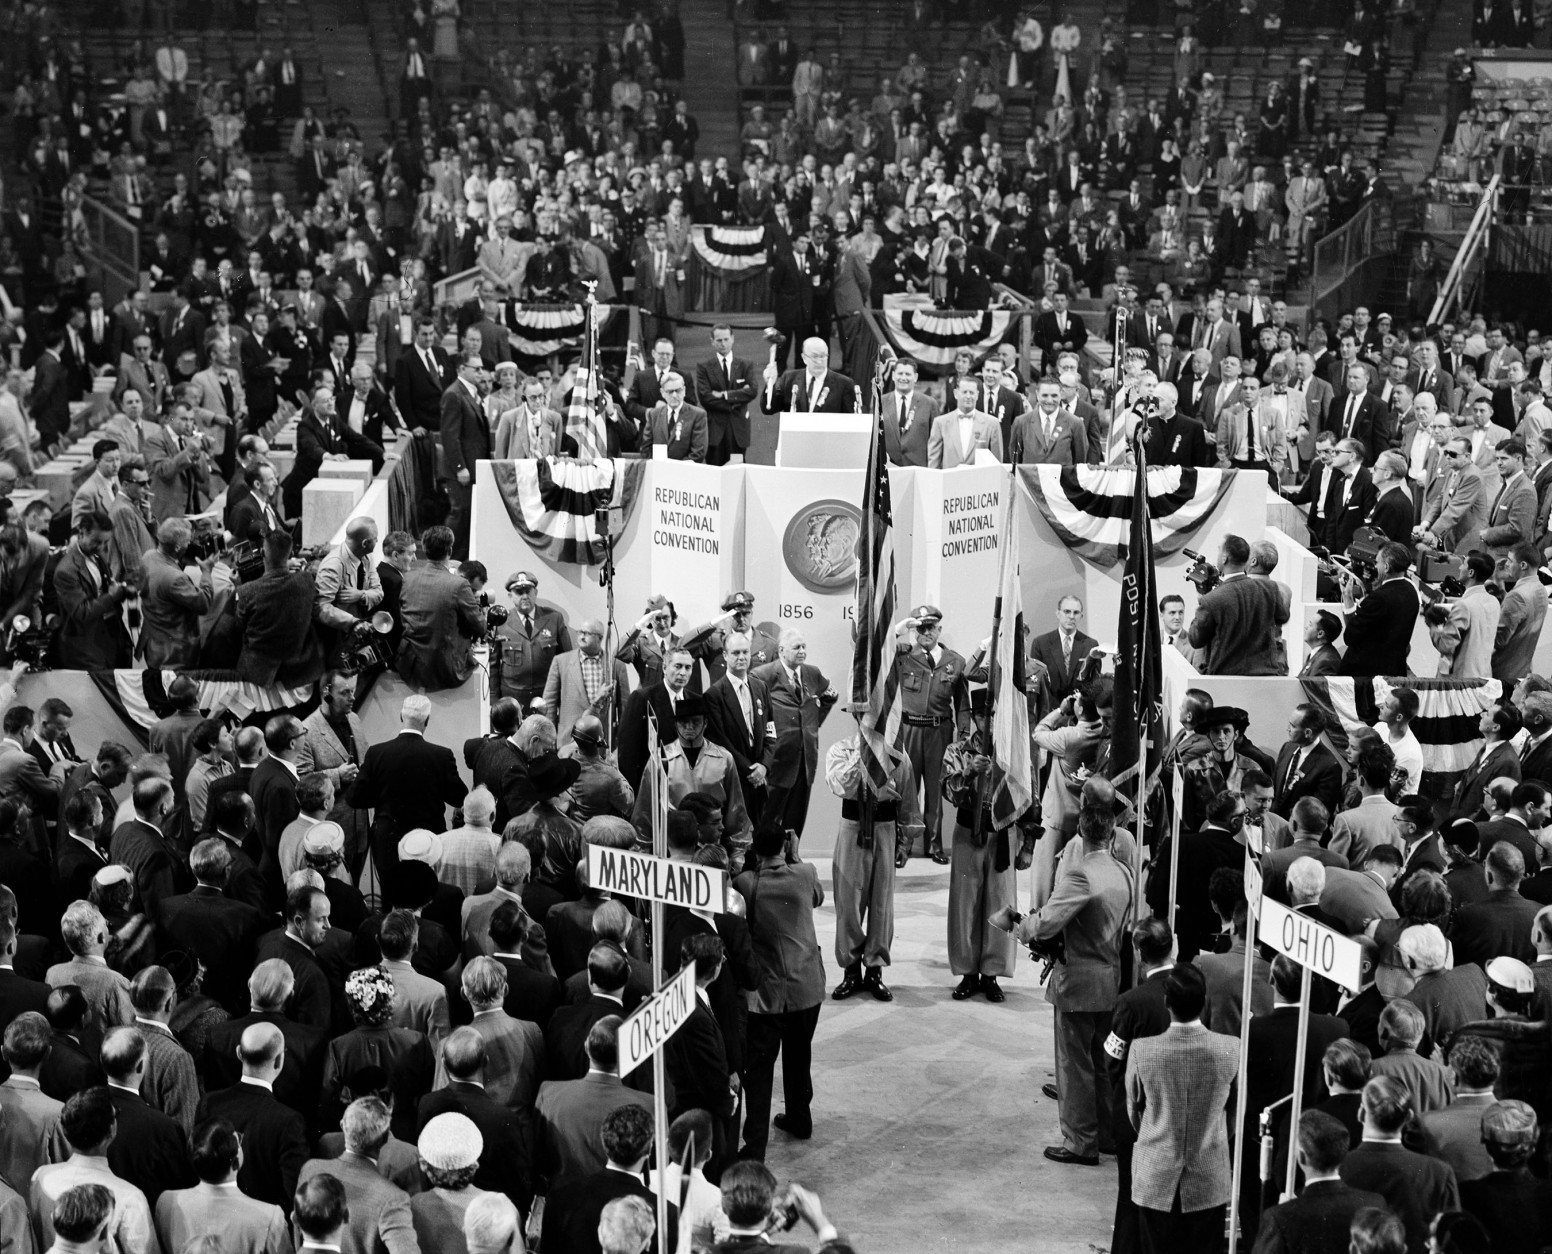 This was the scene around the speaker's rostrum as GOP national committee chairman Leonard Hall called the Republican National Convention to order, Aug. 20, 1956, in San Francisco's Cow Palace.  (AP Photo)